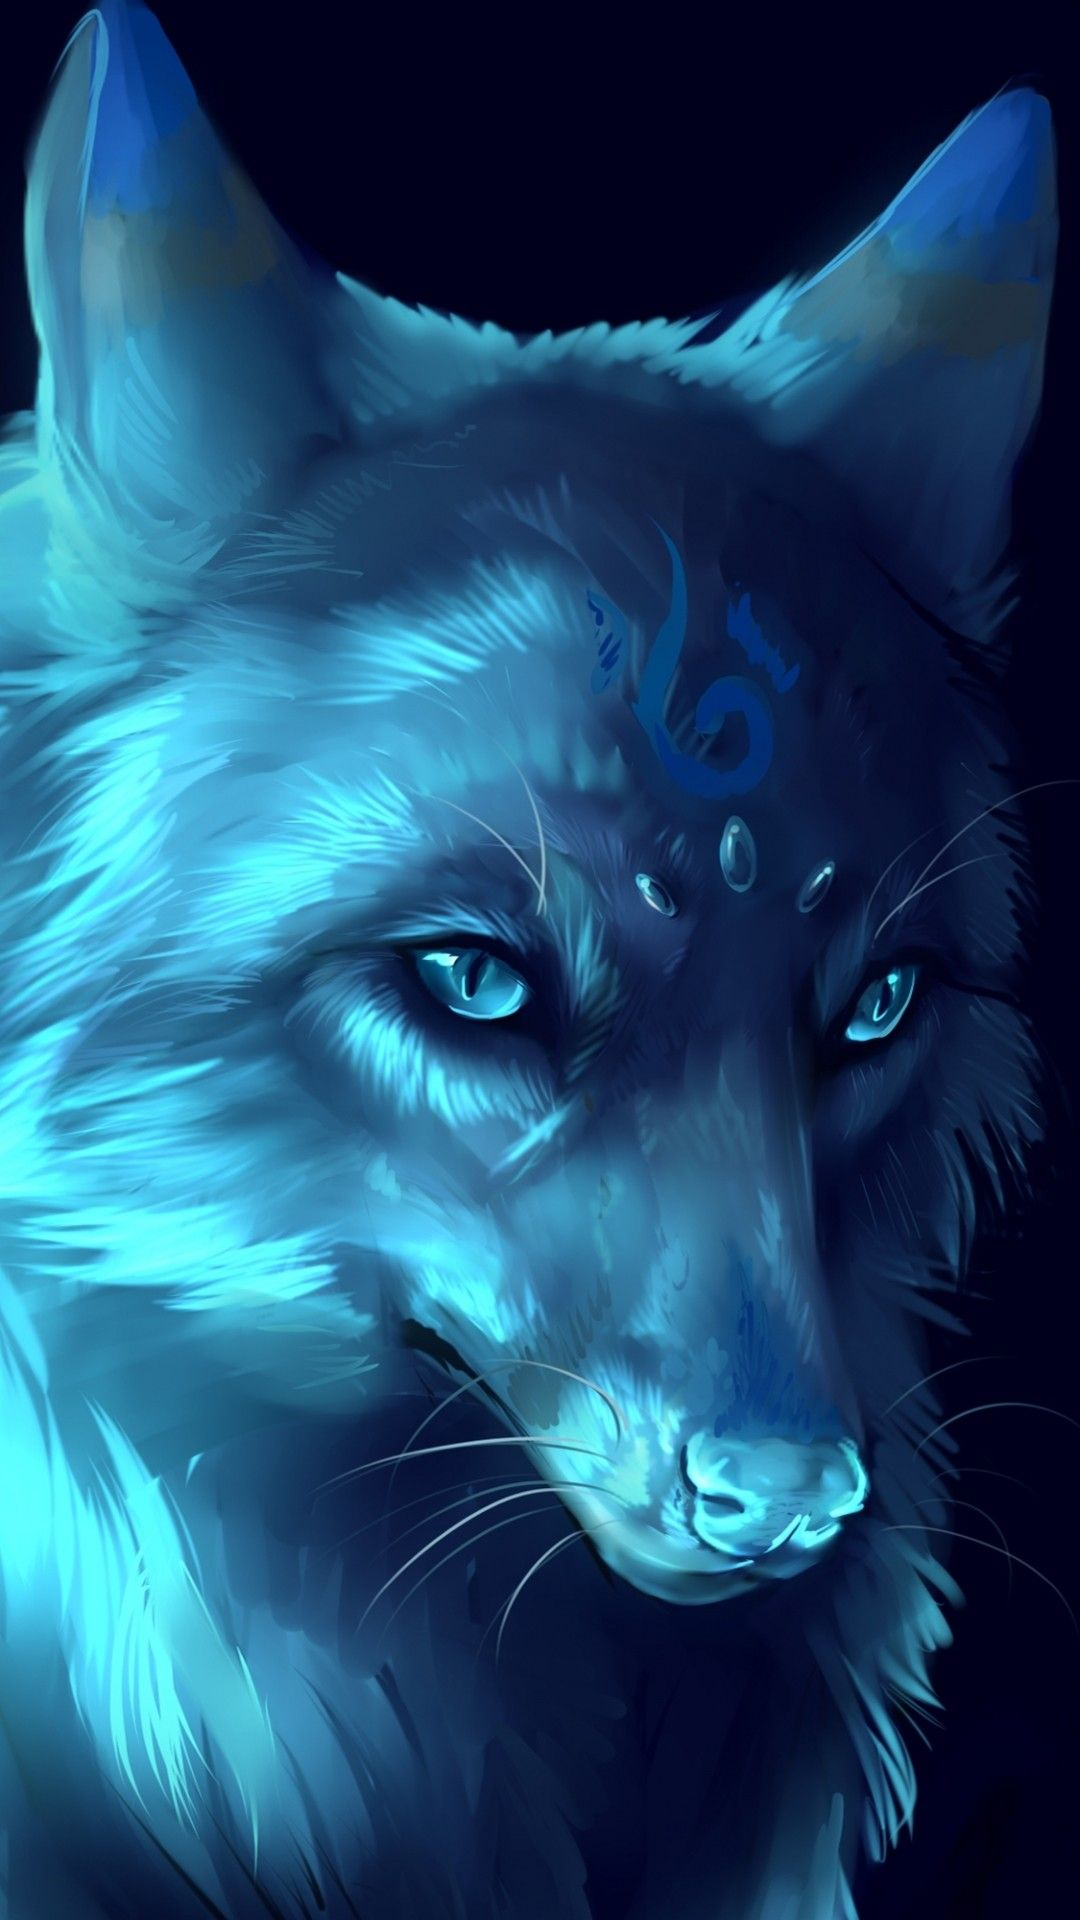 Great 5 Epic Wolf Wallpapers High Definition For Your Android Or Iphone Wallpapers Android Iphone Wallpaper Fantasy Wolf Galaxy Wolf Anime Wolf